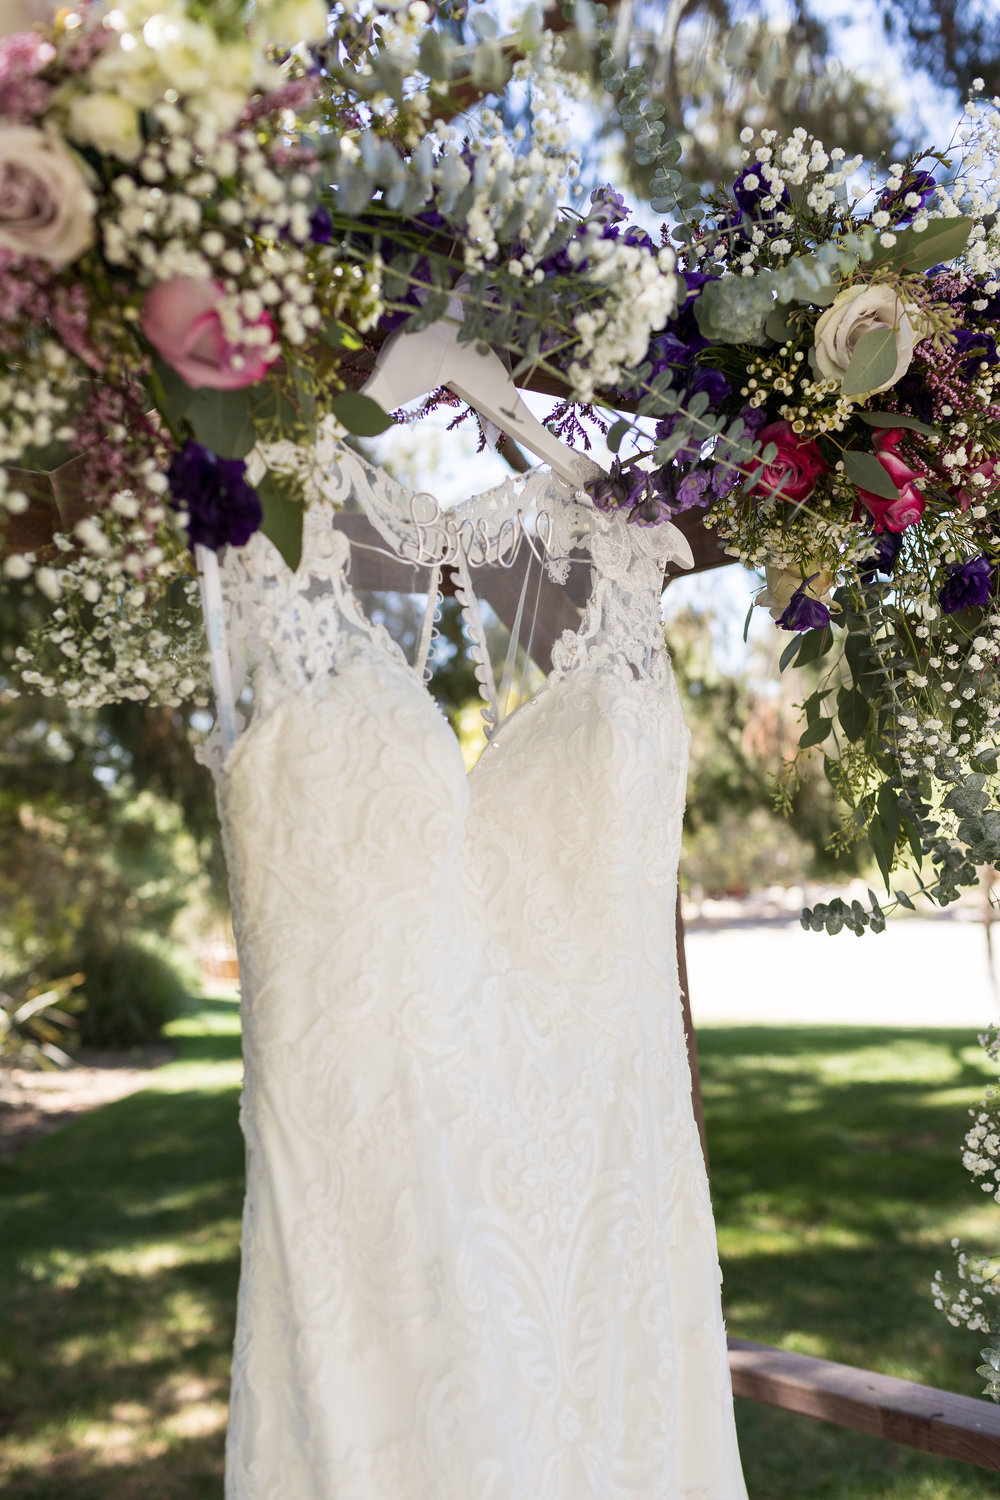 Wedding Dress Hanging Outdoor underneath Floral Arch.jpg